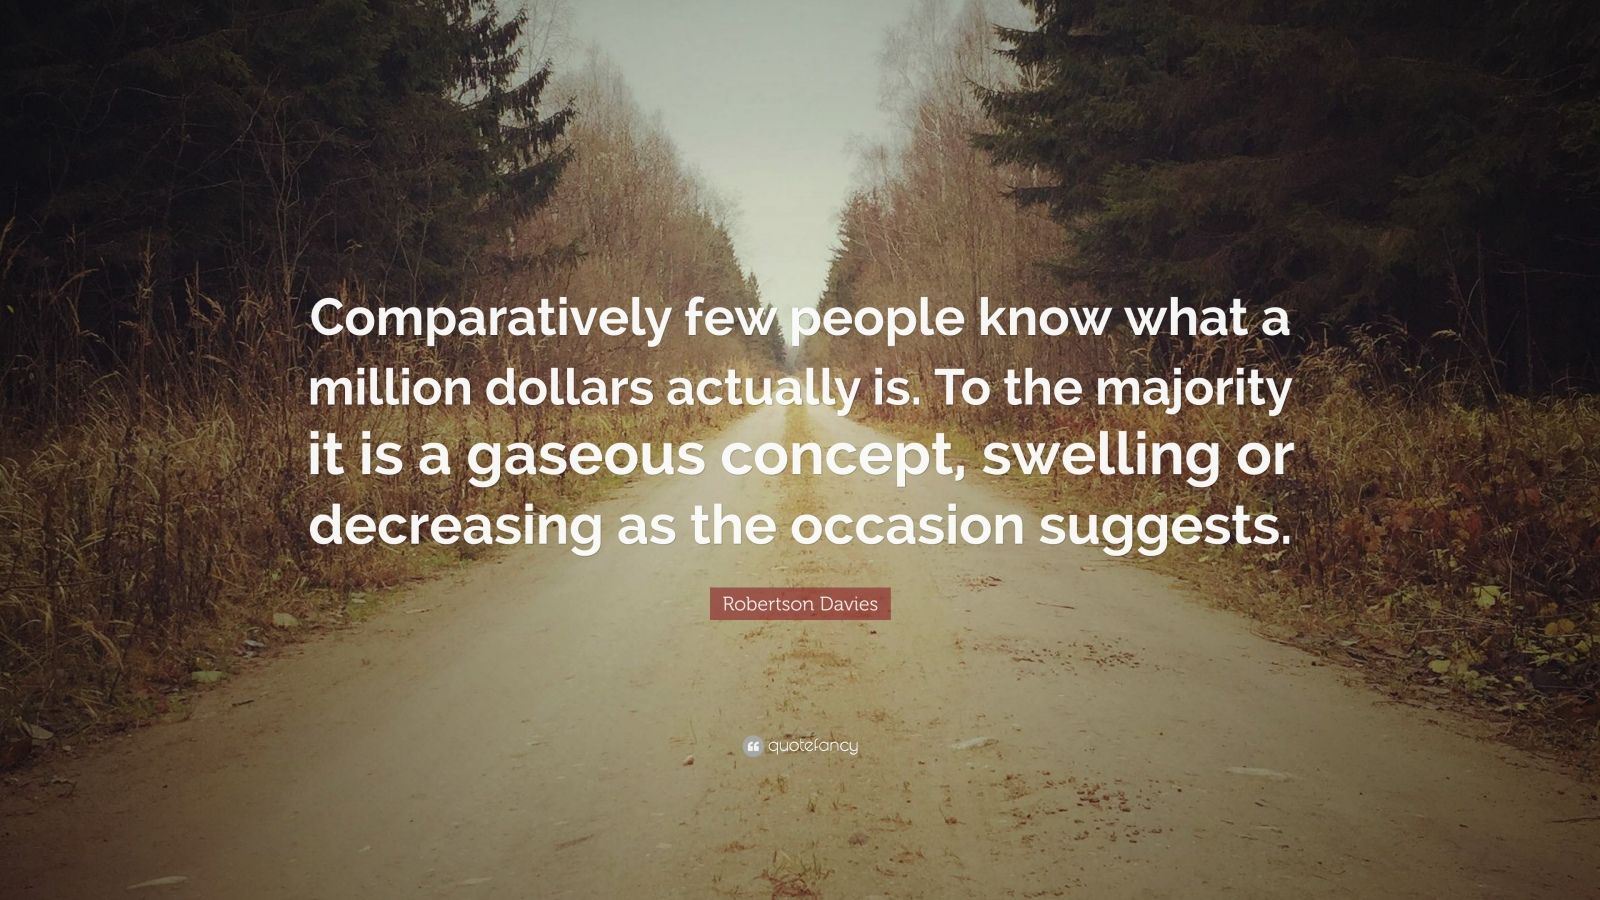 """Robertson Davies Quote: """"Comparatively few people know what a million dollars actually is. To the majority it is a gaseous concept, swelling or decreasing as the occasion suggests."""""""